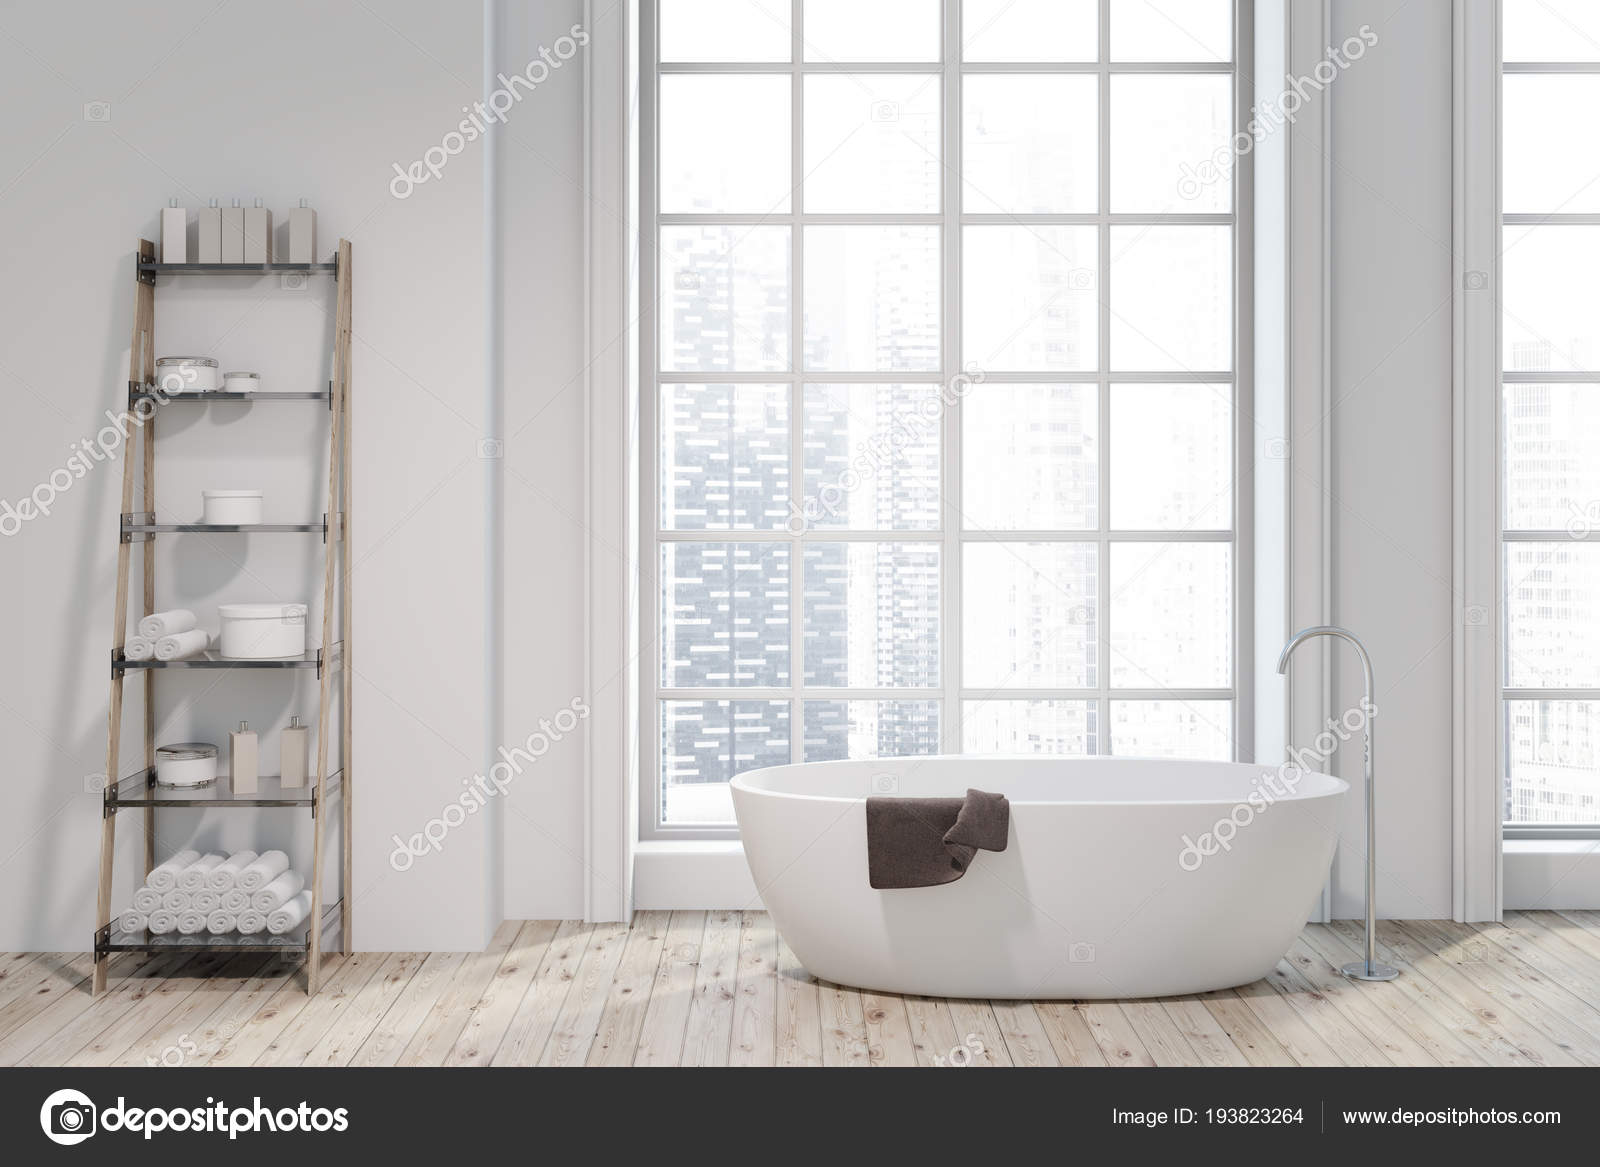 Loft Bathroom Interior Wooden Floor White Walls White Bathtub ...